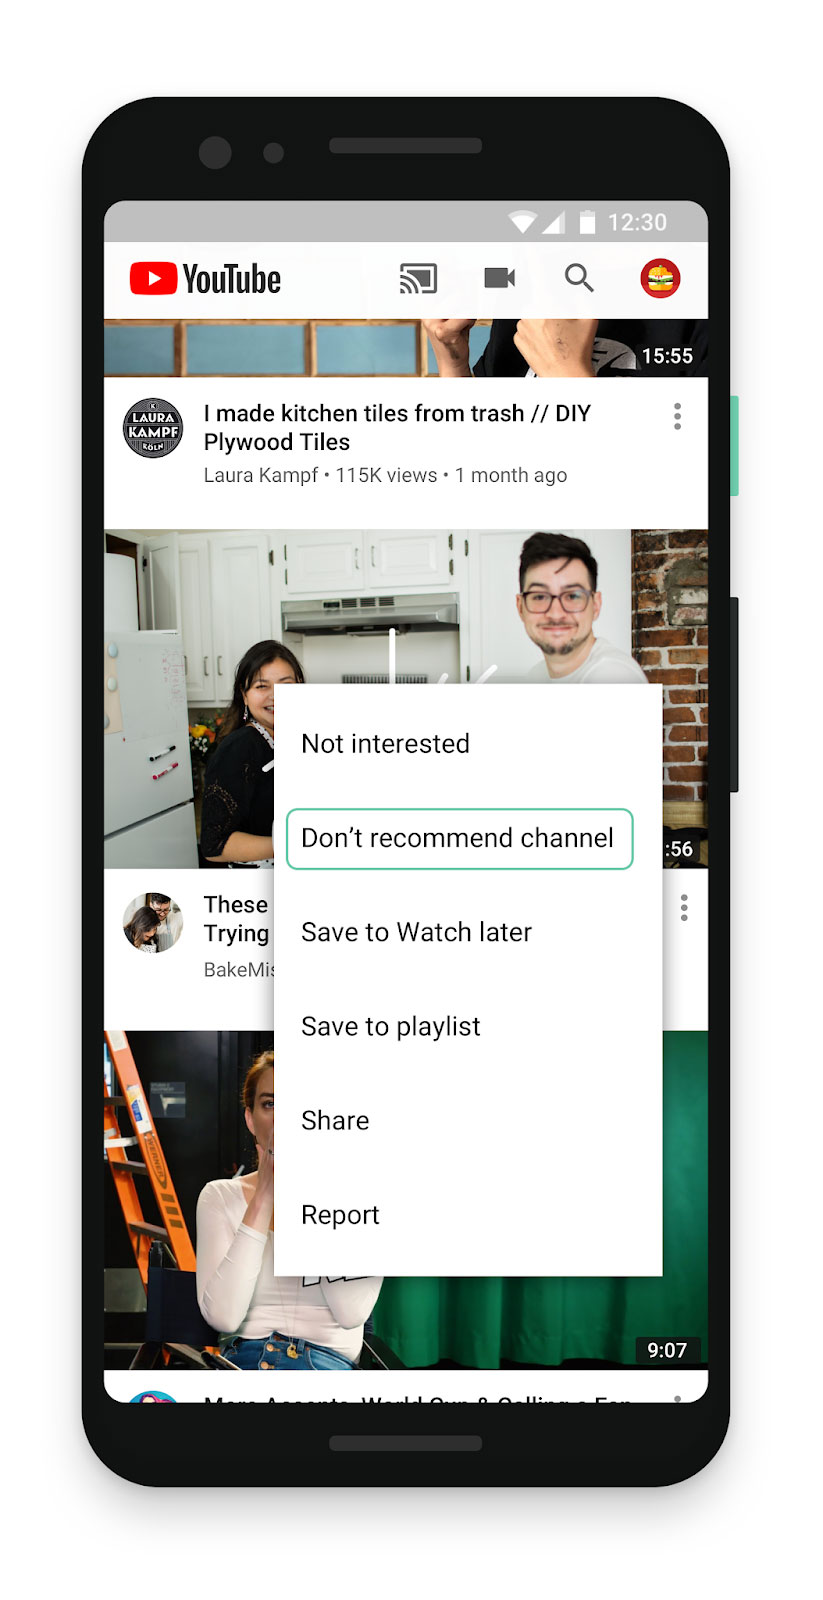 4bfdc96849a Additionally, YouTube will now be more transparent about why certain videos  and channels have been brought to your attention, offering extra  information ...